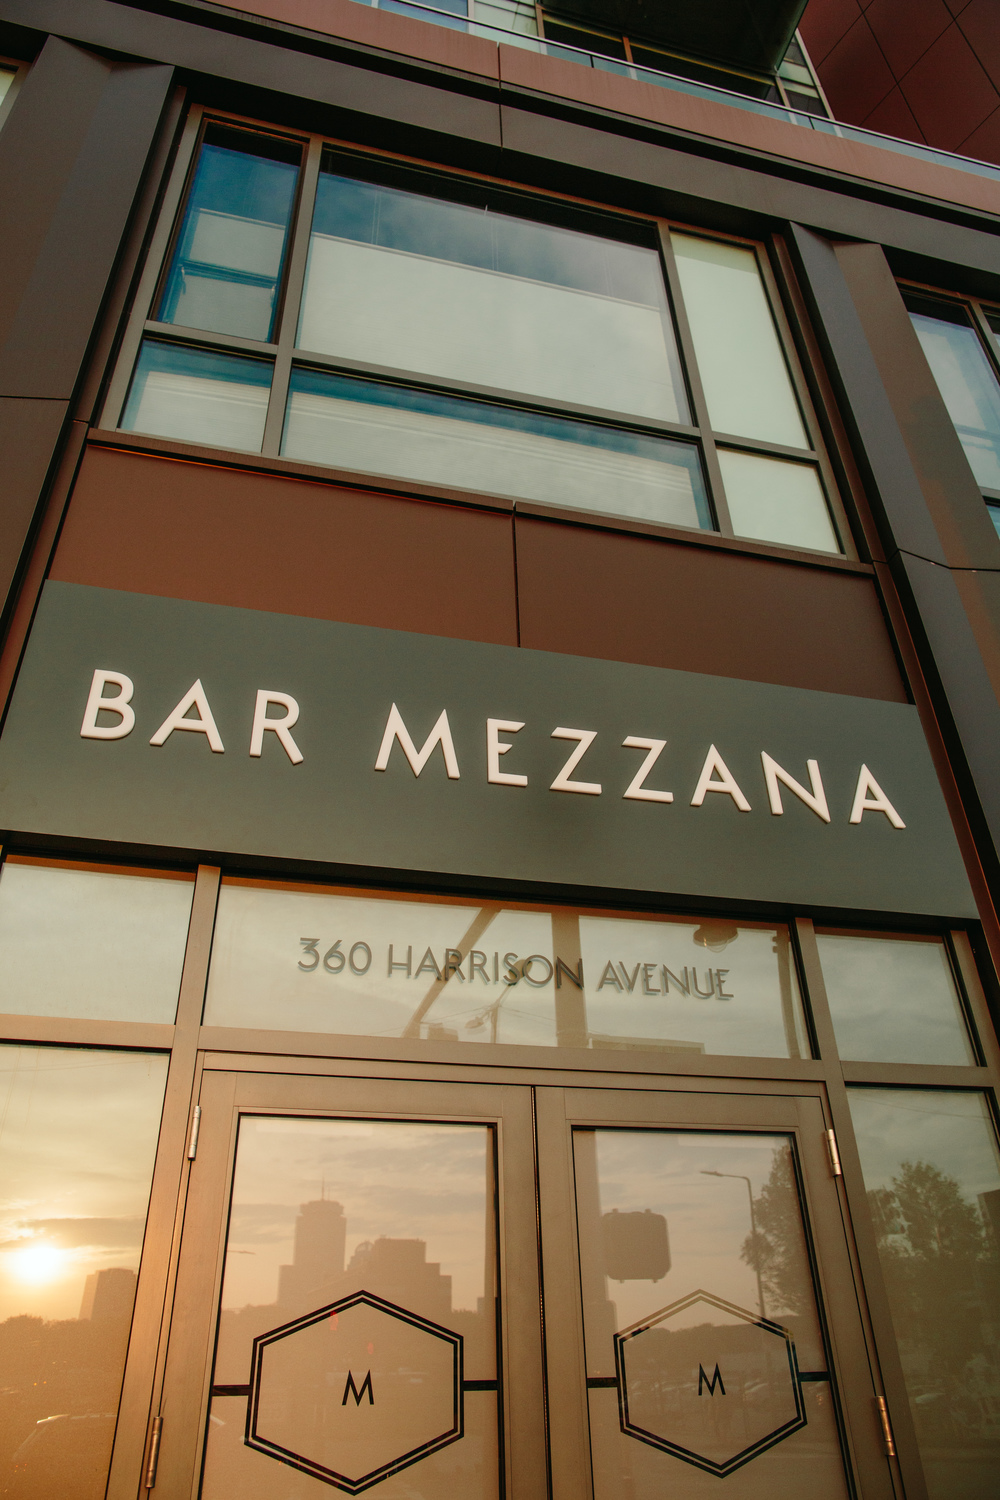 BAR MEZZANA_MAY 27 2016_BRIAN SAMUELS PHOTOGRAPHY-122.jpg